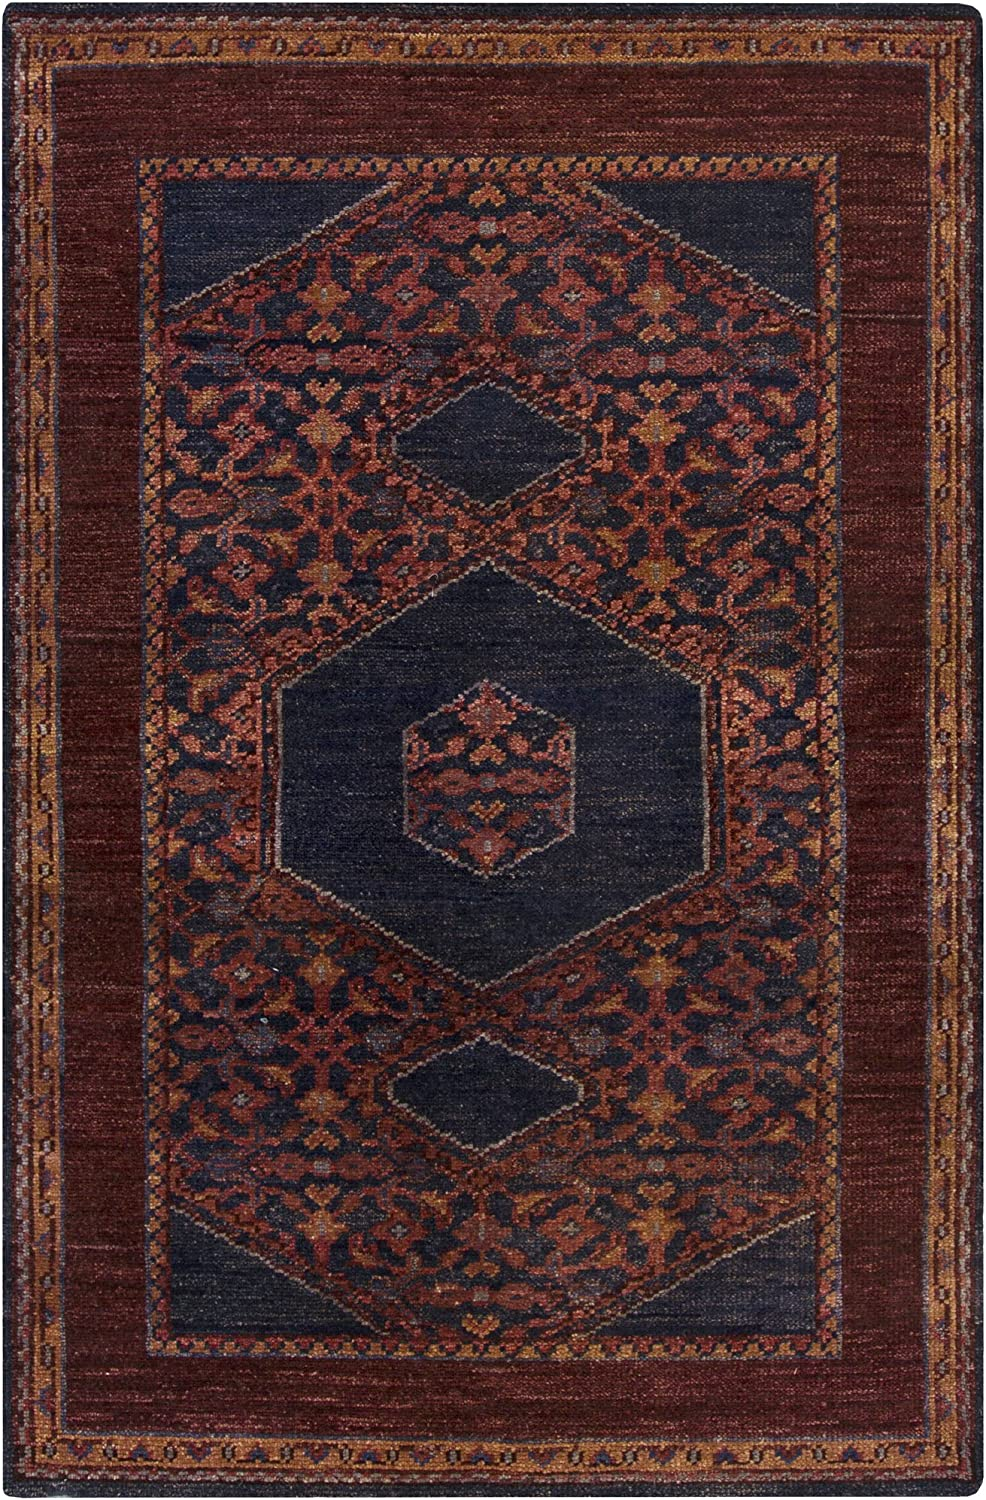 B00IRNHJ92 Surya Hand Knotted Casual Accent Rug, 3-Feet 6-Inch by 5-Feet 6-Inch, Eggplant/Burgundy/Navy/Cherry 91eKlm9boWL